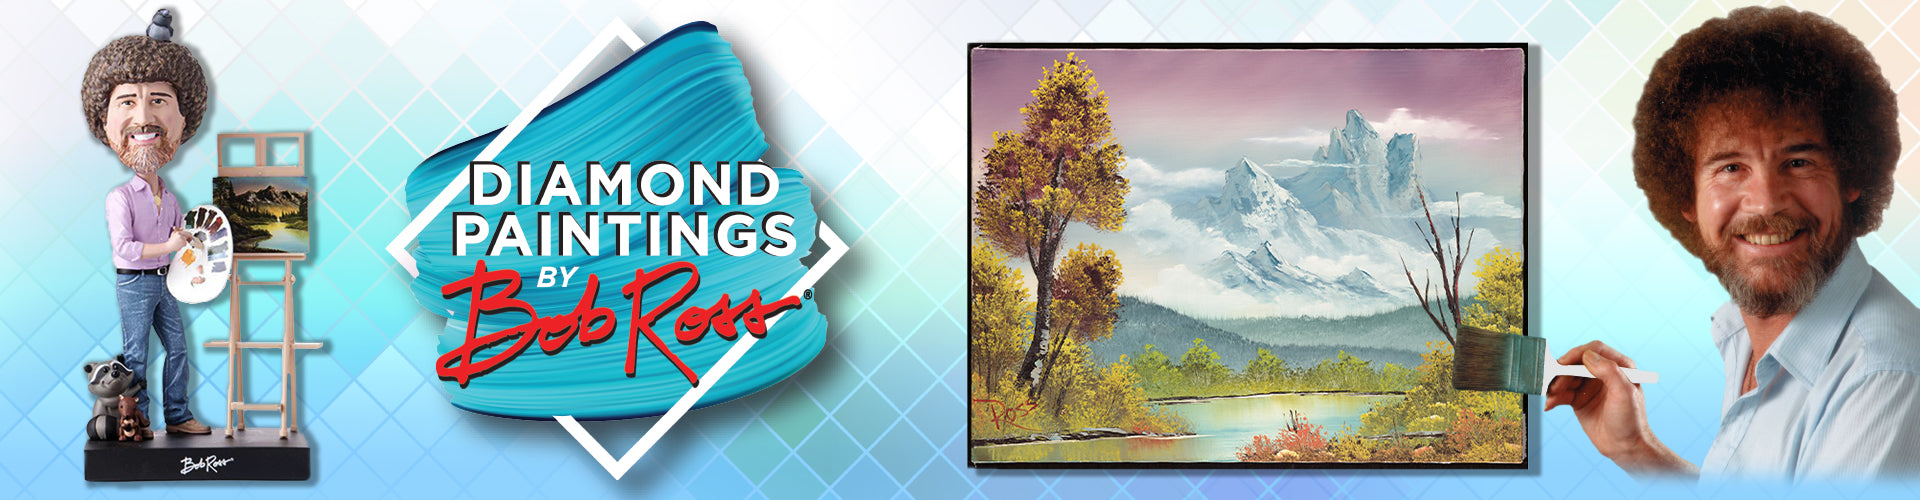 Enjoy our collection of bob ross bobble head and diamond paintings